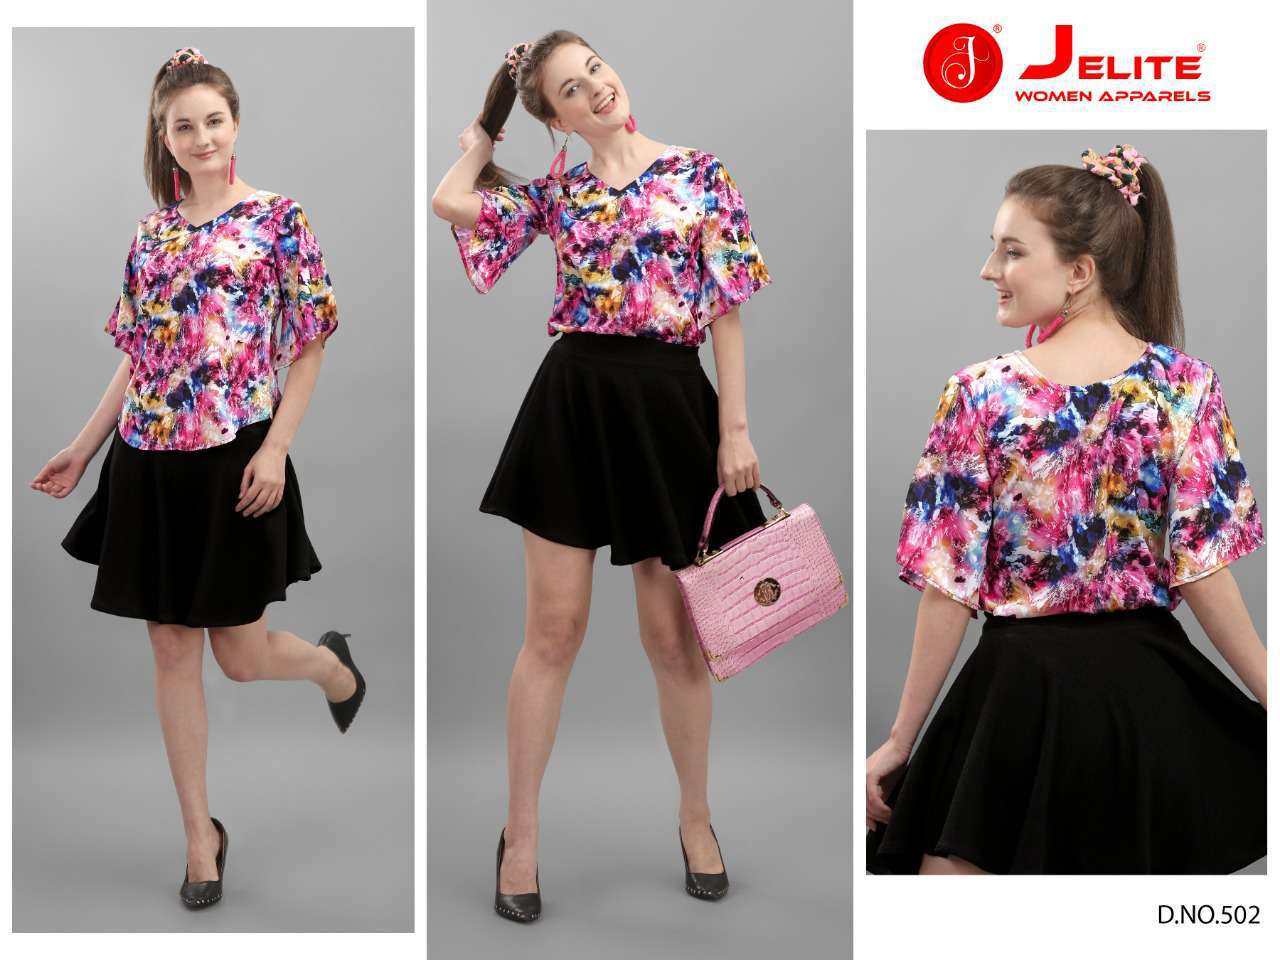 Jelite Orchid Tops Wholesale Catalog 8 Pcs 2 - Jelite Orchid Tops Wholesale Catalog 8 Pcs